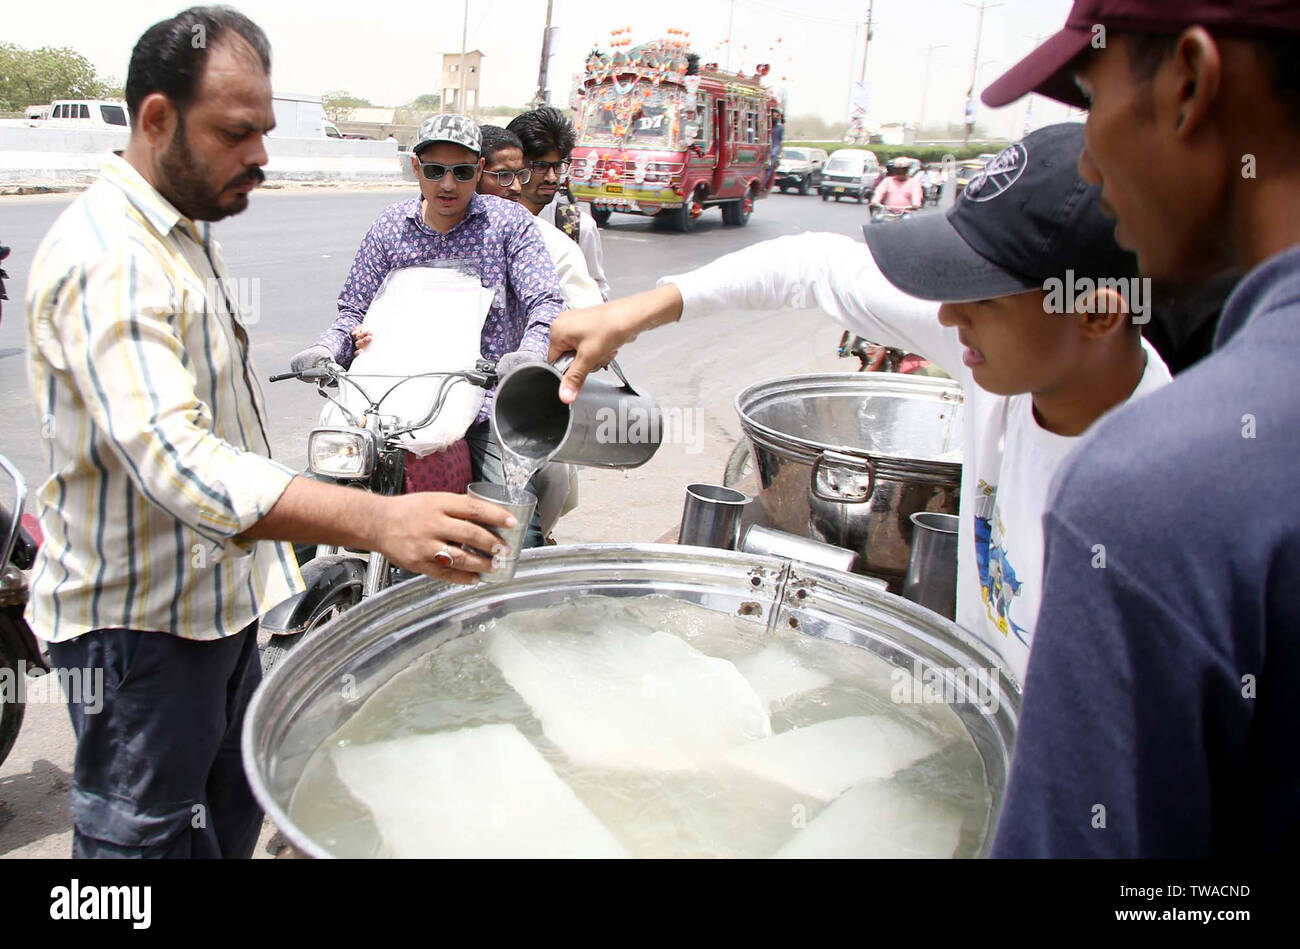 Citizens are quenching their thirst by chilled water to beat the heat of sun during the hot day of summer season, at a relief camp of heat stroke organized by Social Organization, located on Shahrah-e-Faisal road in Karachi on Tuesday, June 18, 2019. - Stock Image